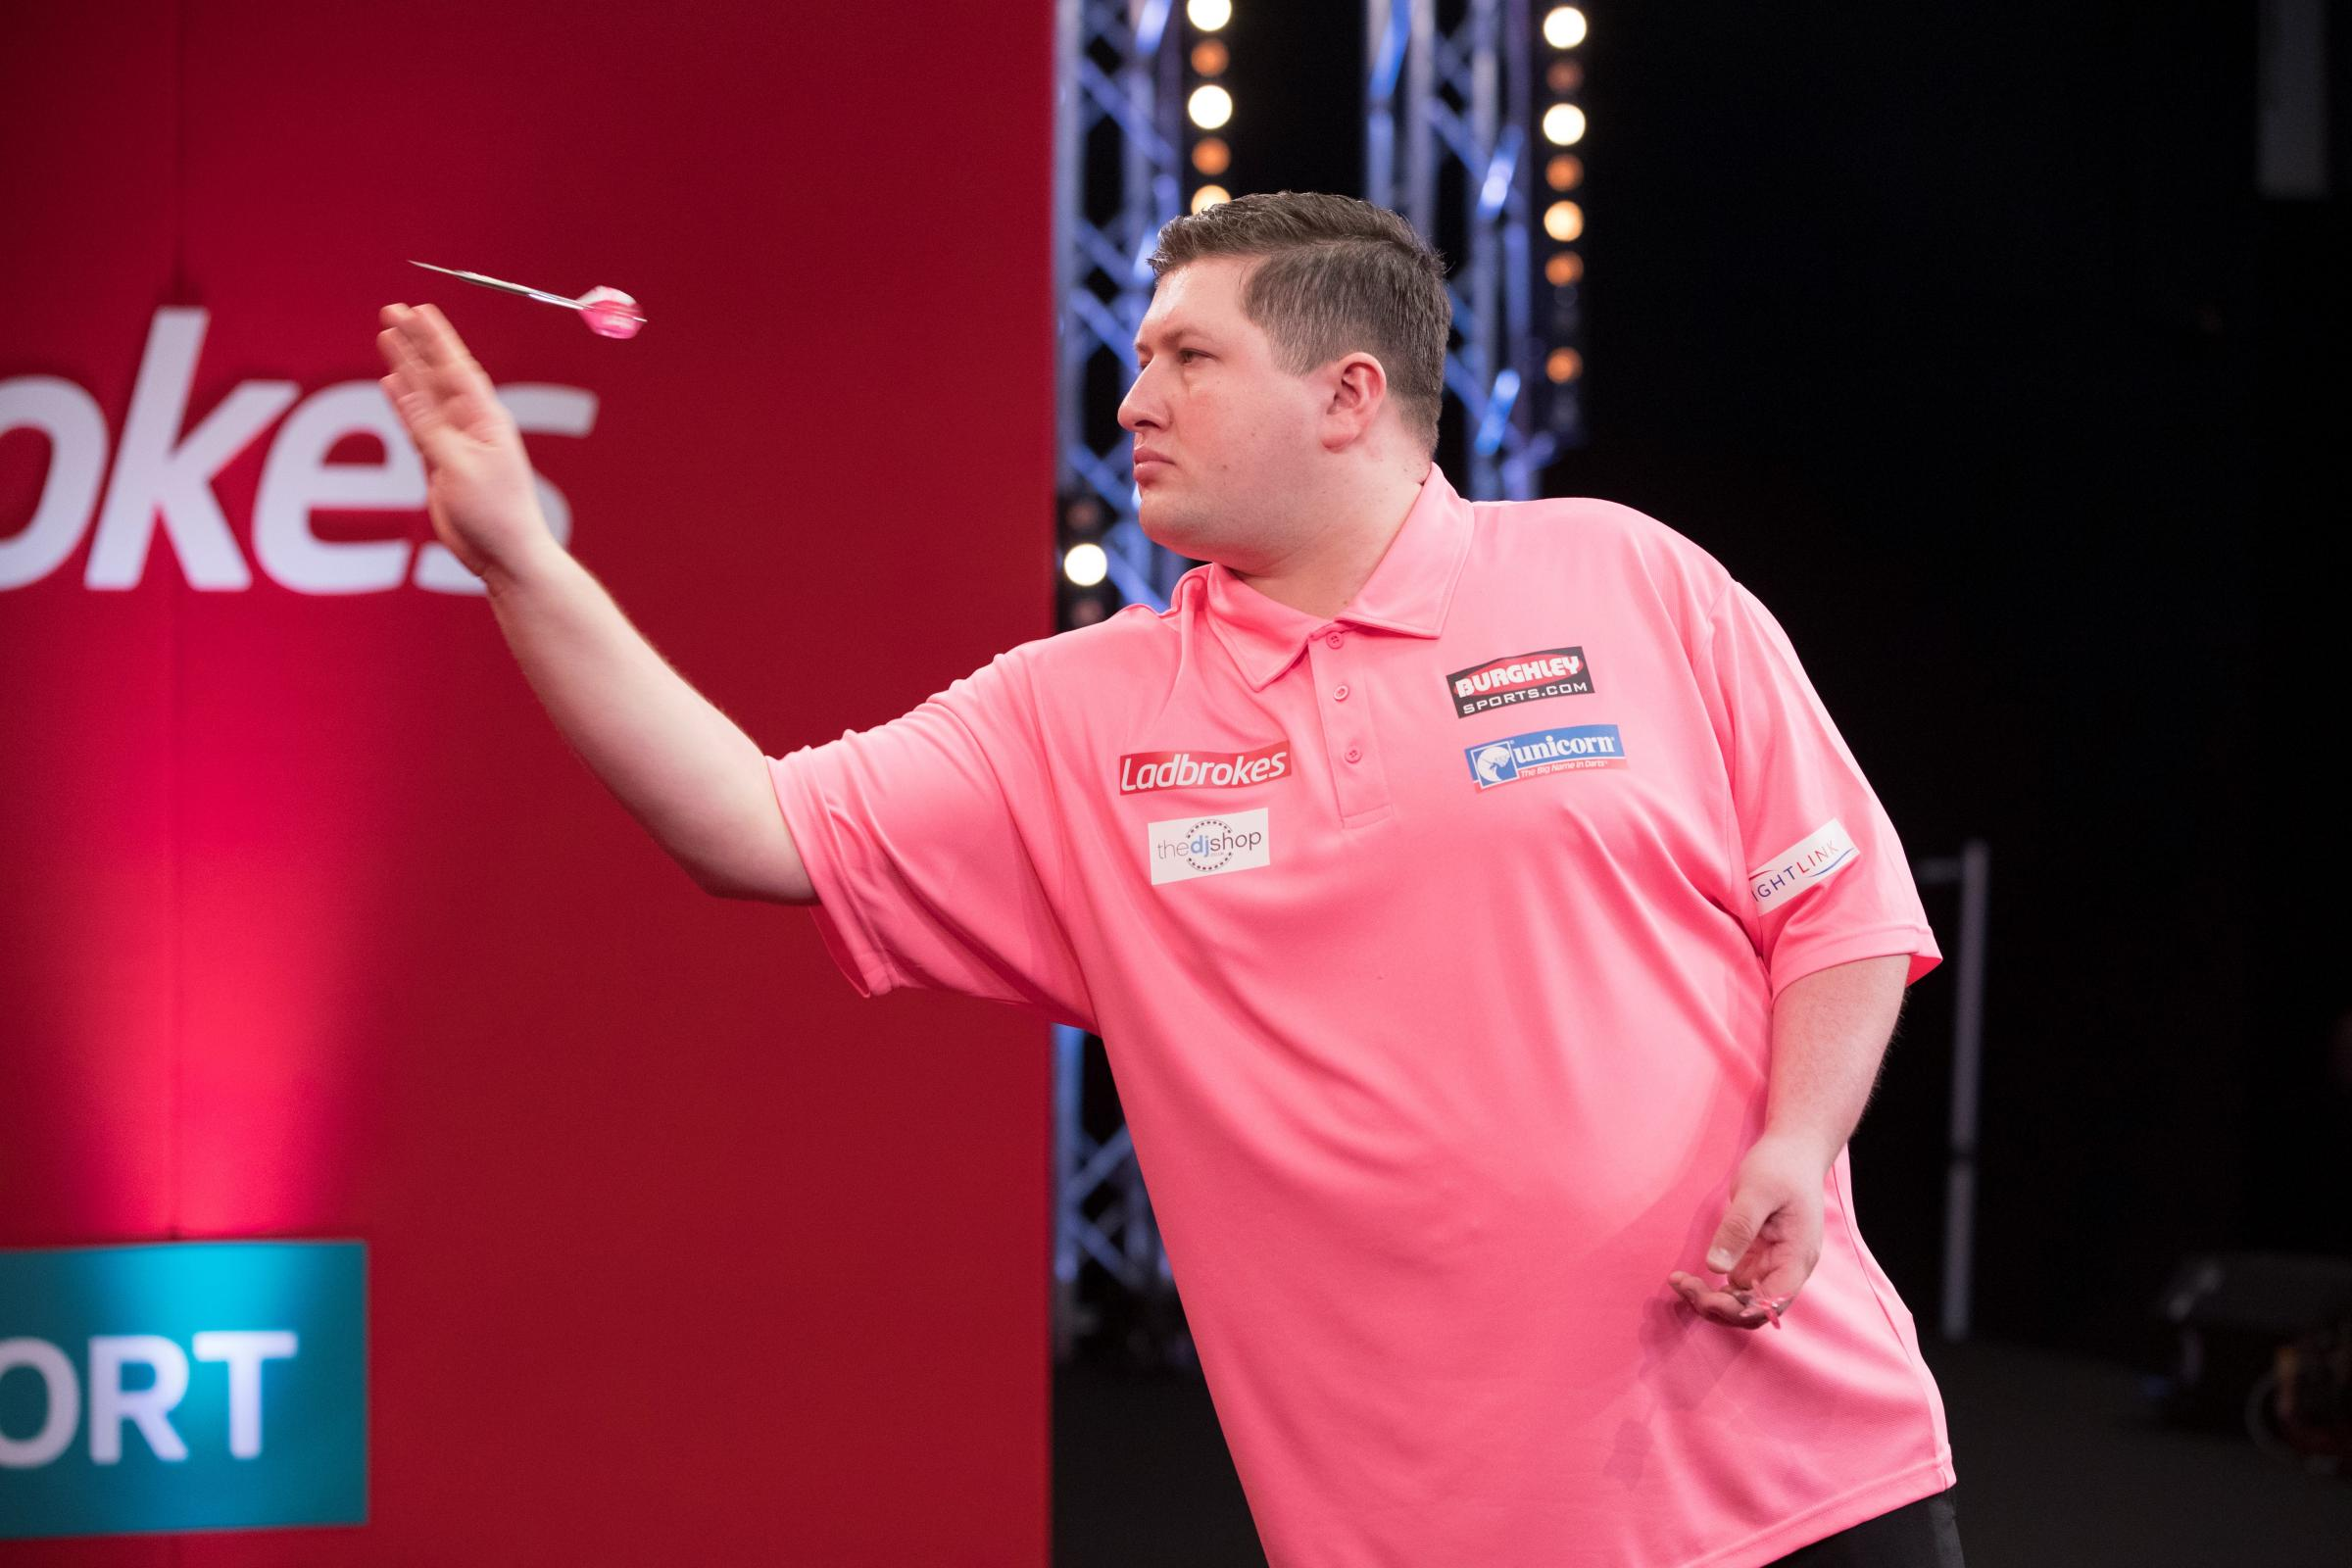 Isle of Wight darts star Keegan Brown beat 24th seeded Jelle Klaasen in the William Hill World Championships at London's Ally Pally this evening (Friday).  Photos:  Lawrence Lustig/PDC